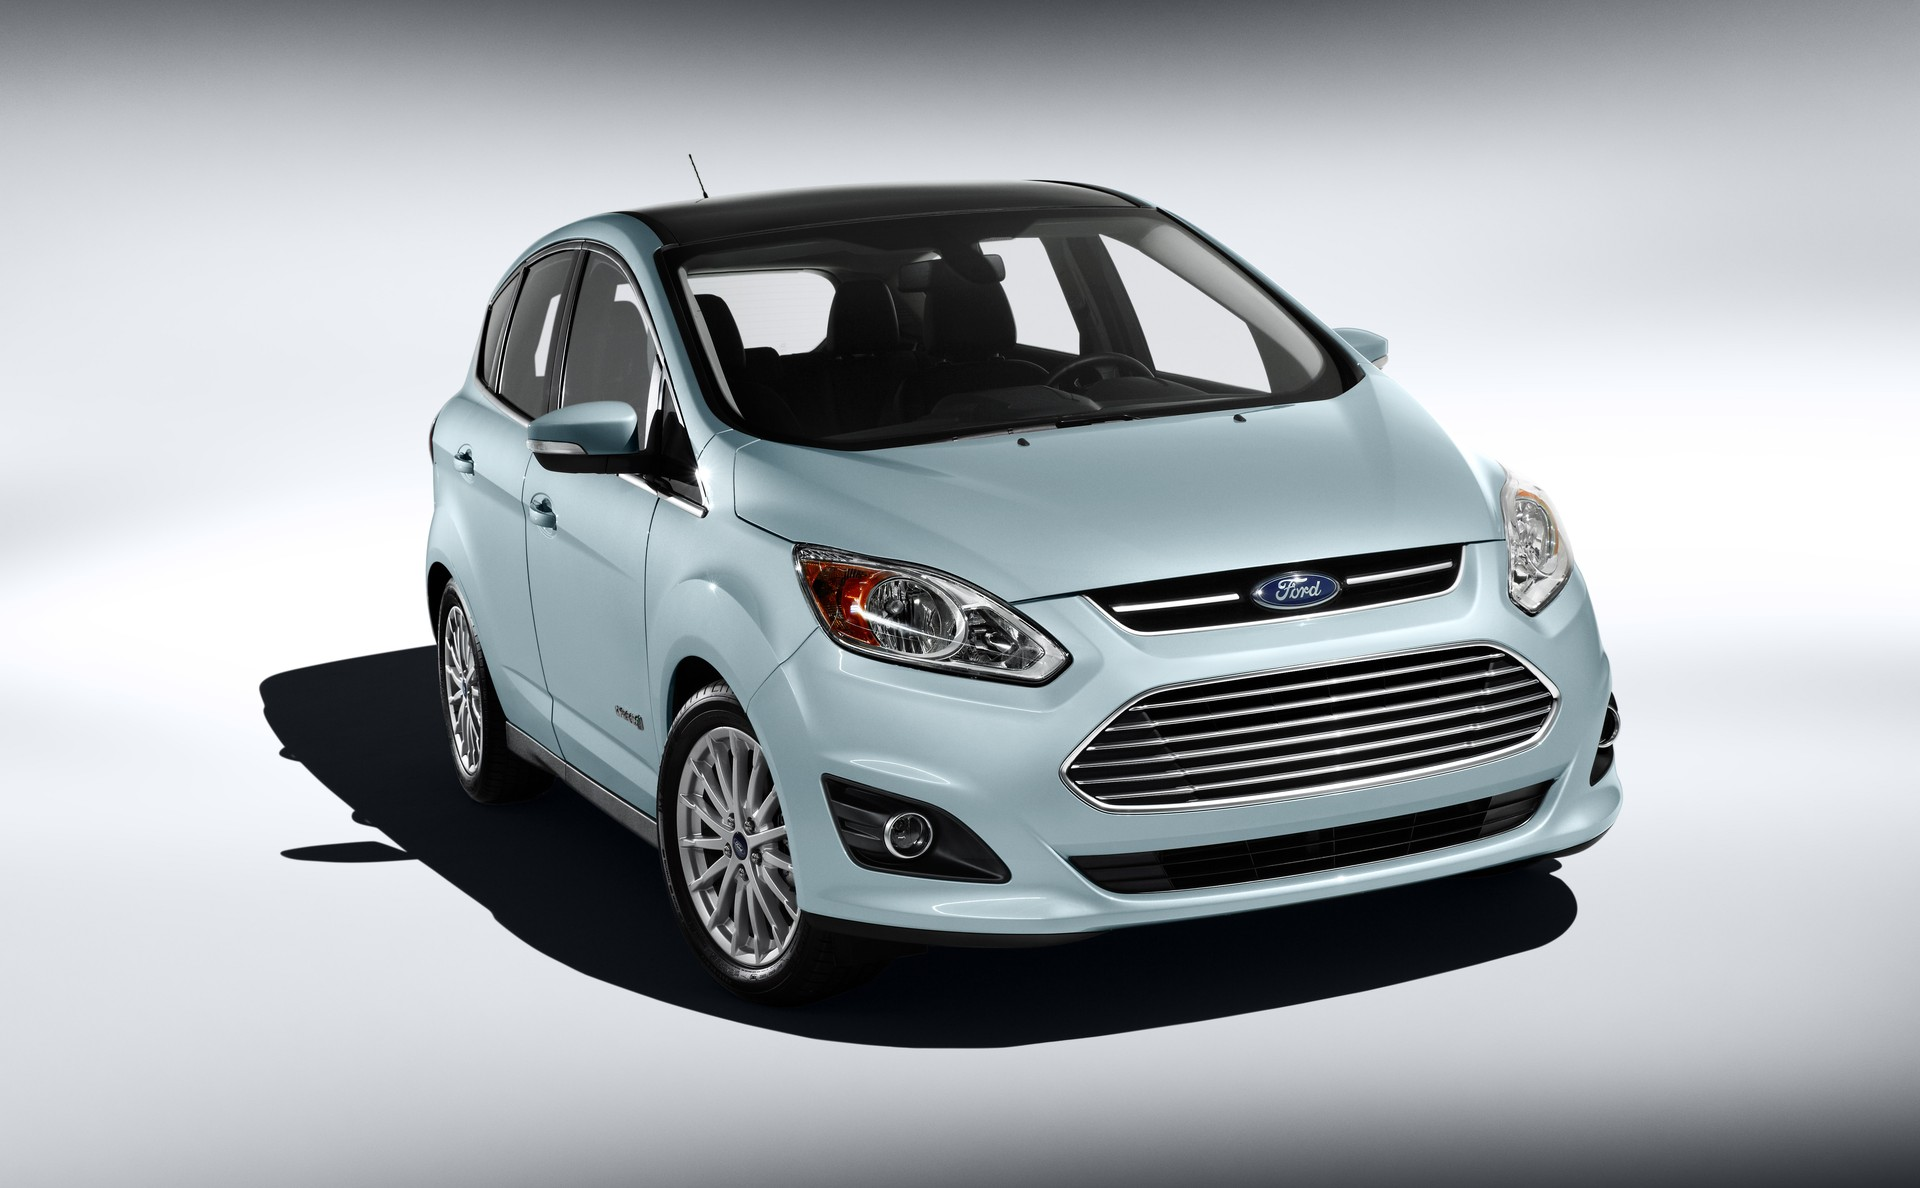 ford c max hybrids recalled to fix engine shut off problem. Black Bedroom Furniture Sets. Home Design Ideas